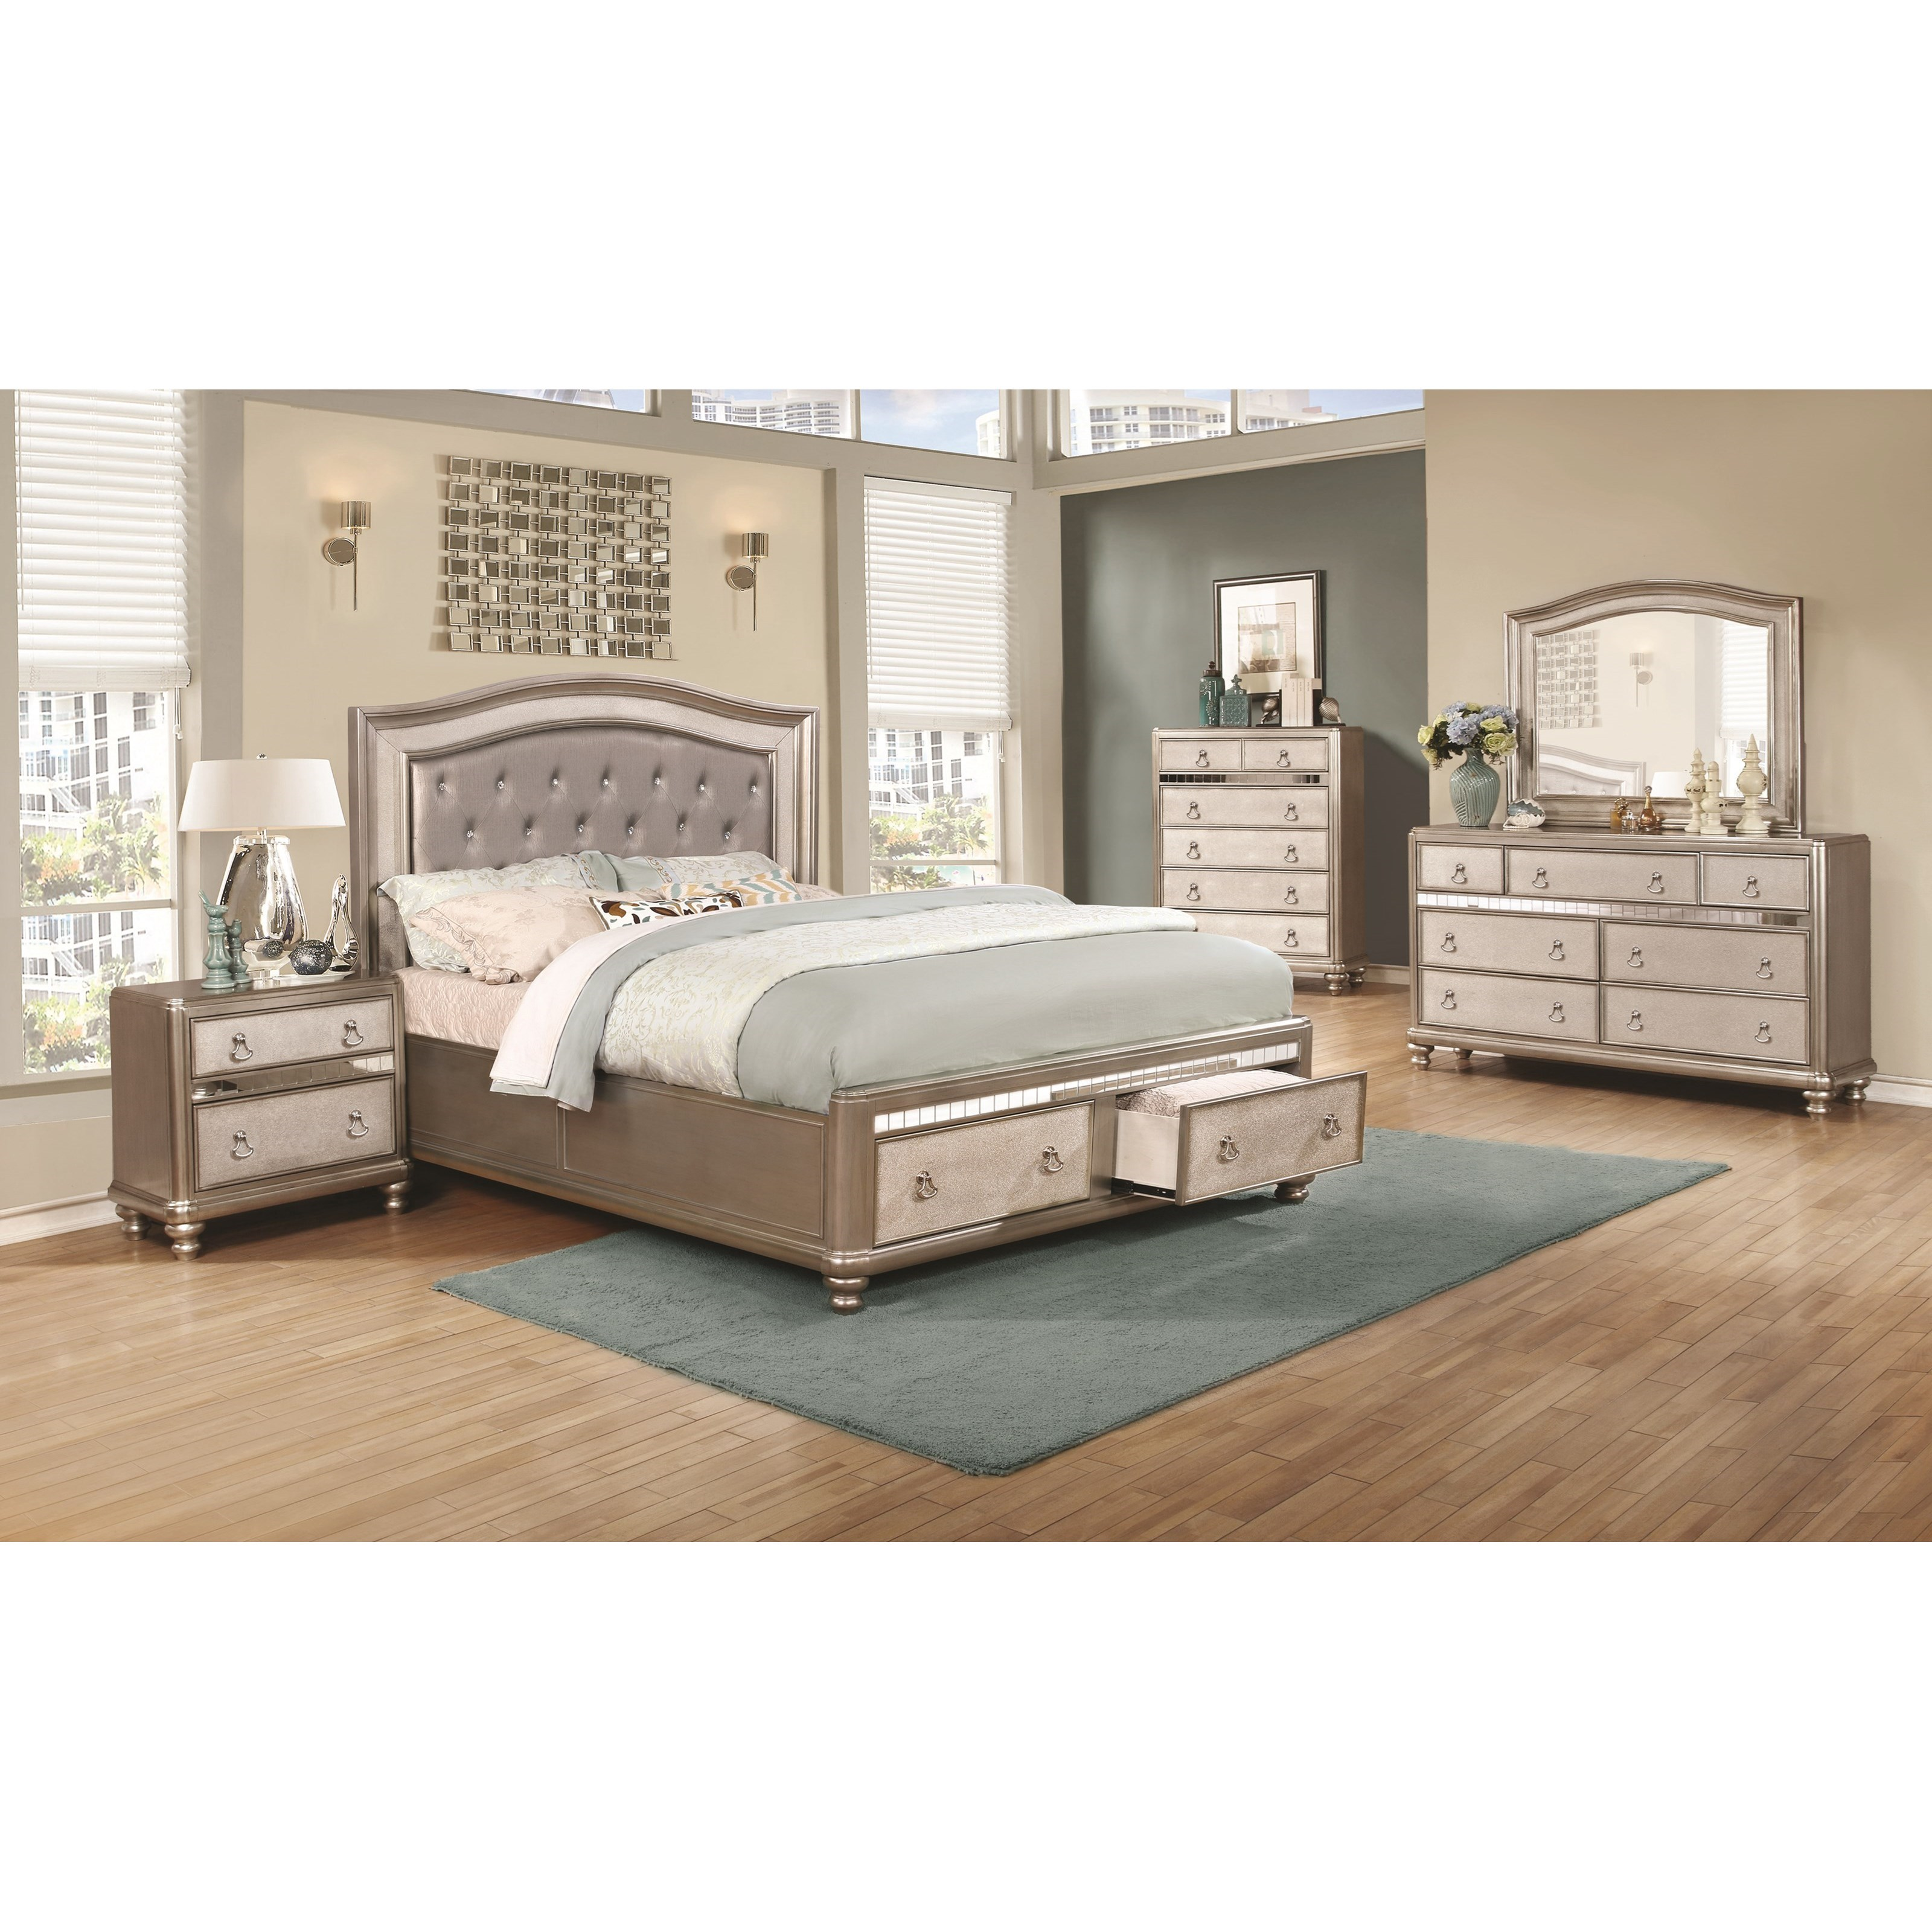 Bling Game King Bedroom Group by Coaster at Rife's Home Furniture